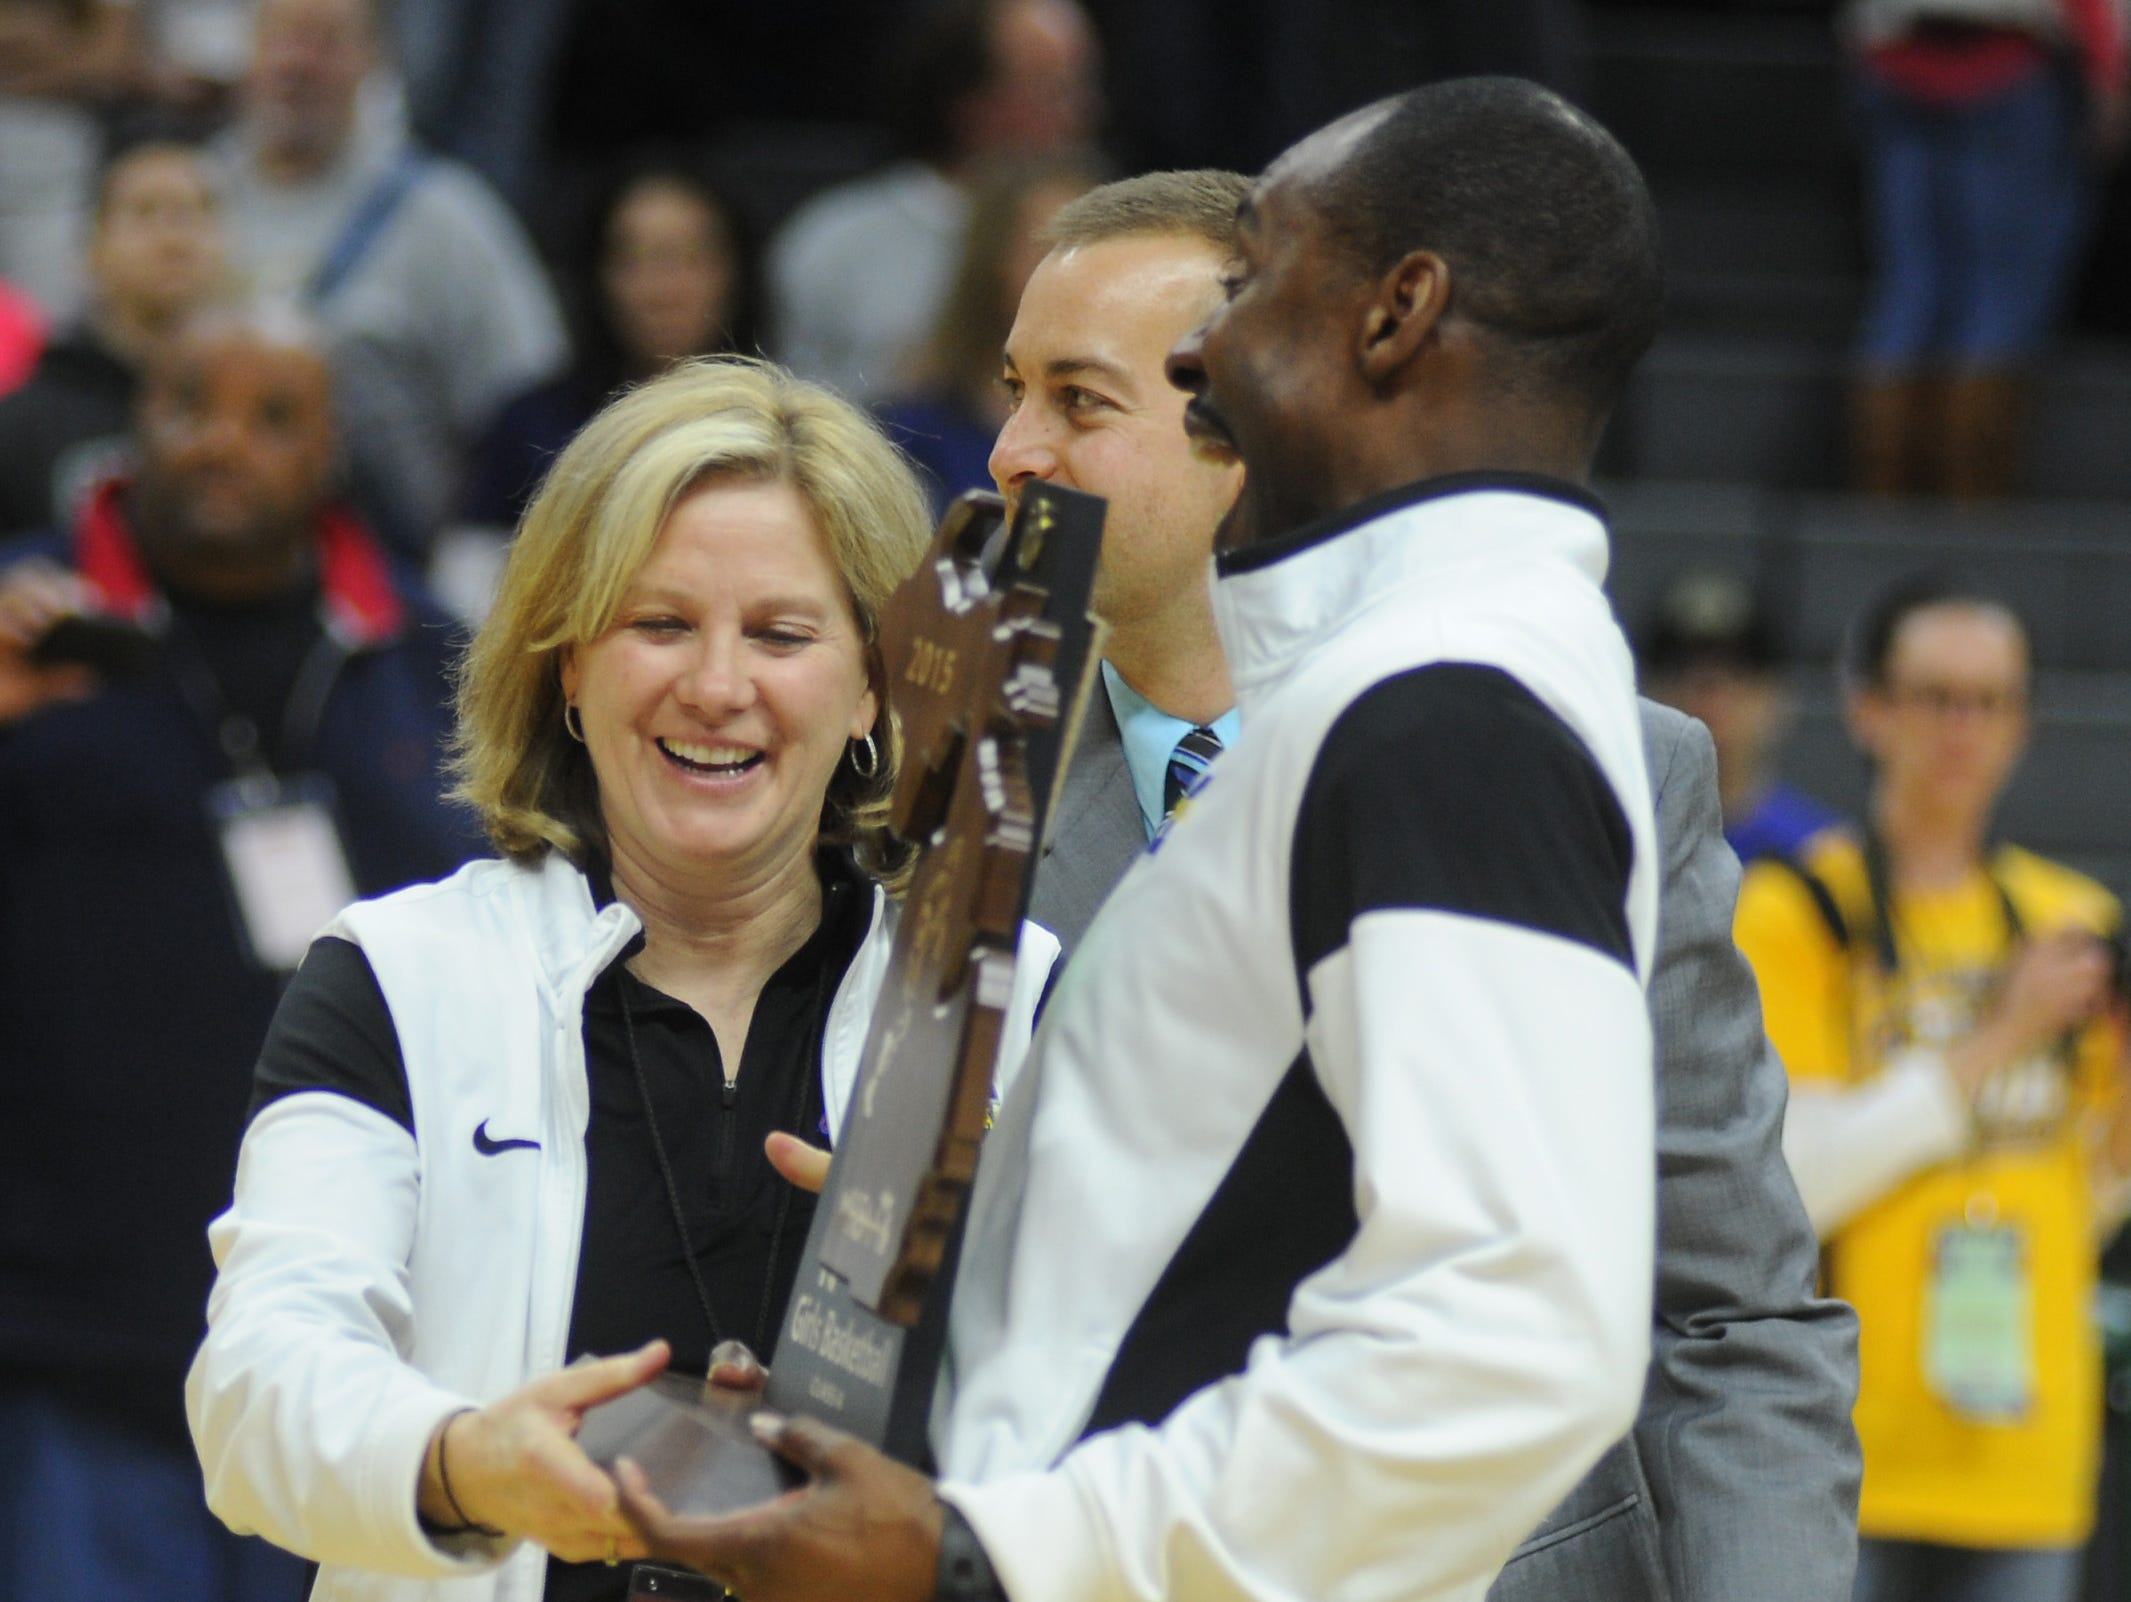 Head coach Mary Cicerone and assistant Derek Thomas were all smiles after leading Marian to back-to-back Class A state championships for the first time in program history. Thomas will not be on staff next season.